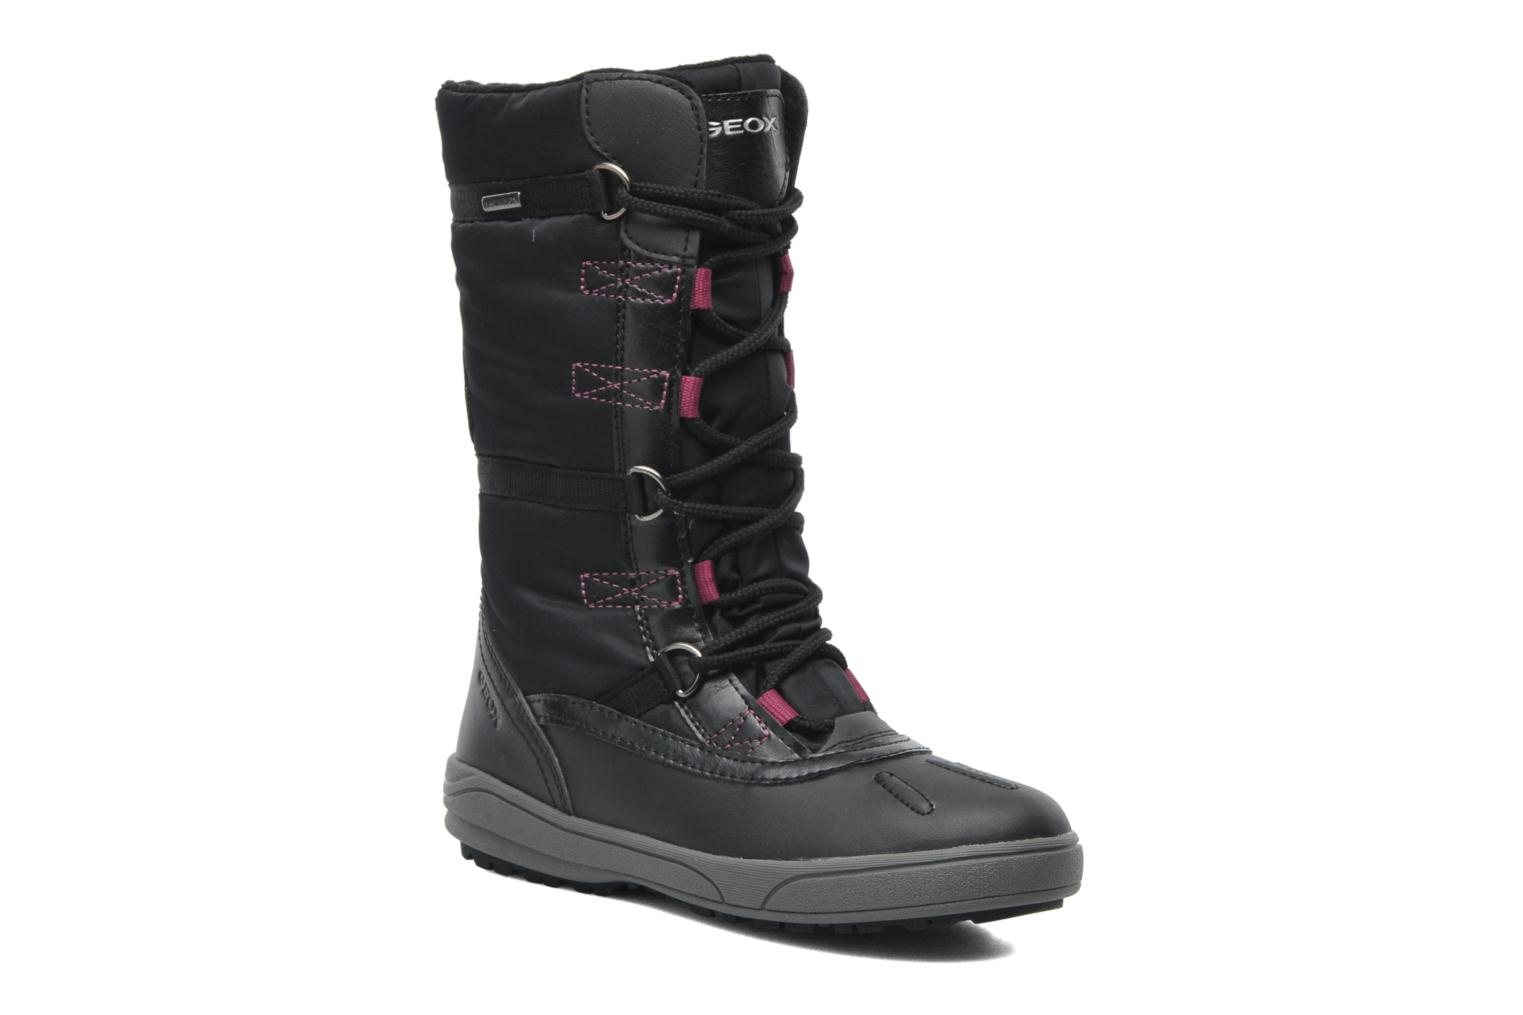 J JOING B GIRL ABX D (waterproof) Blackfuchsia